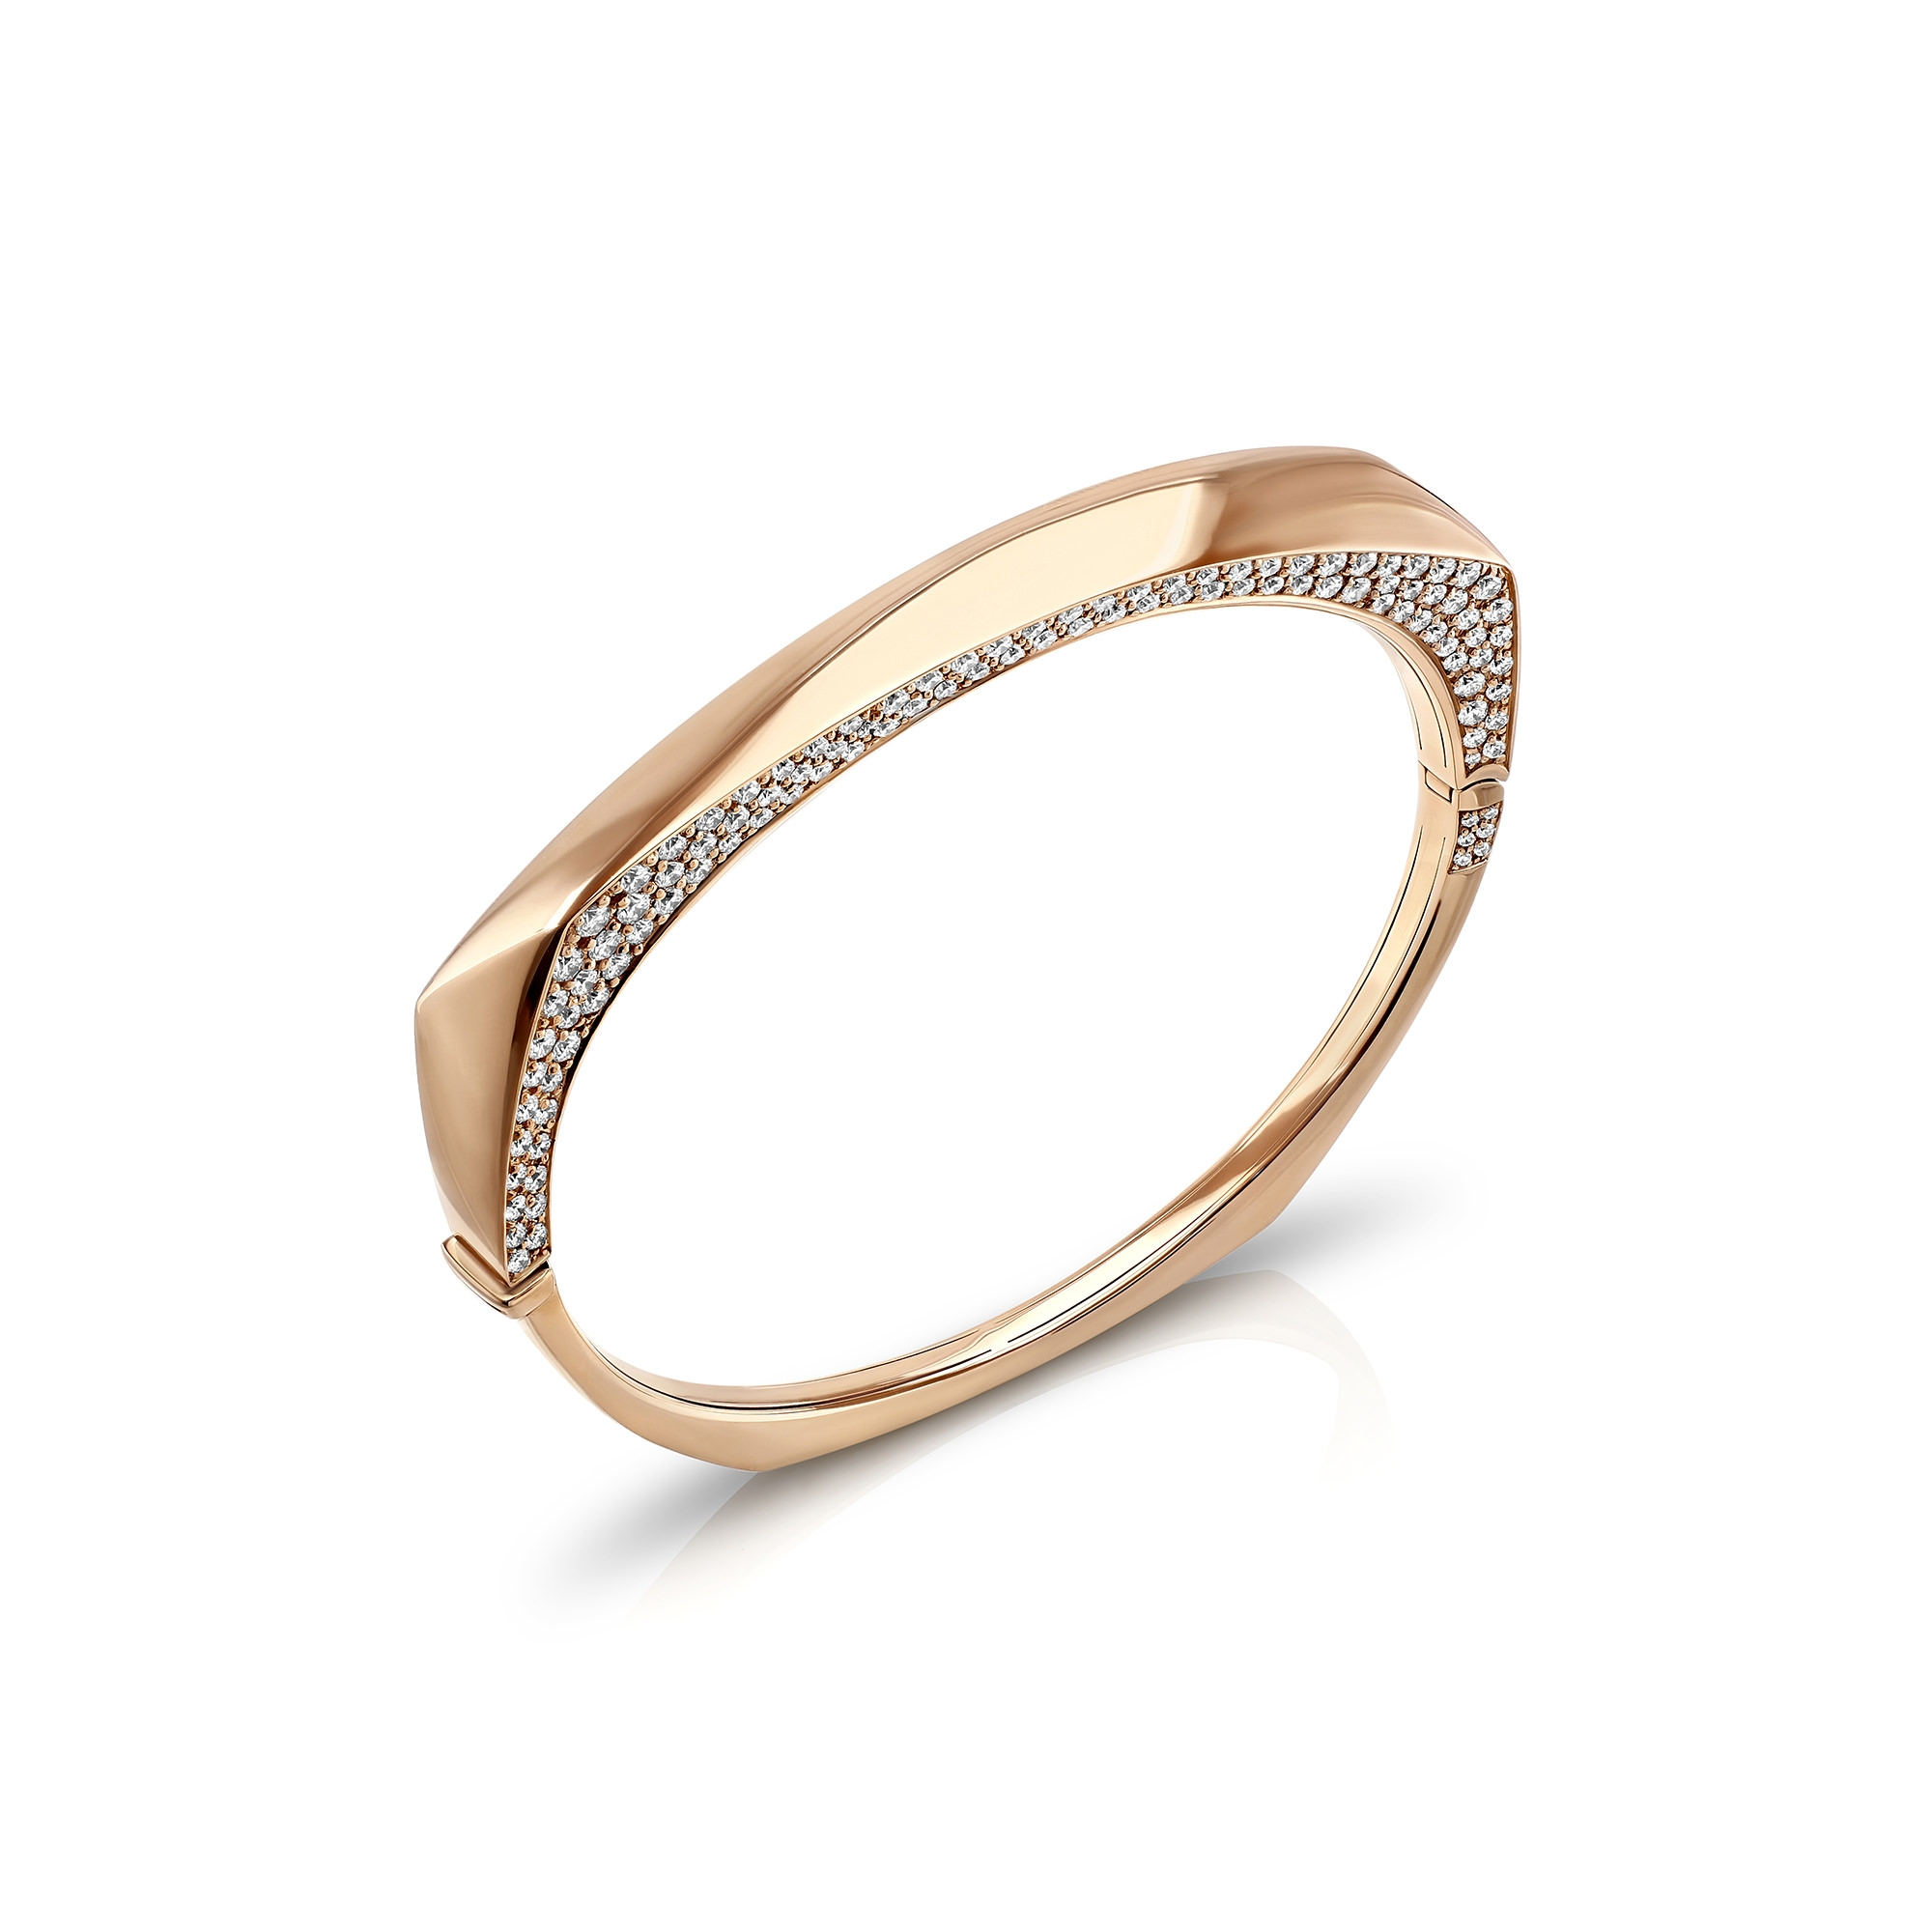 Cleo Rose Gold 'Secret' Diamond Bangle